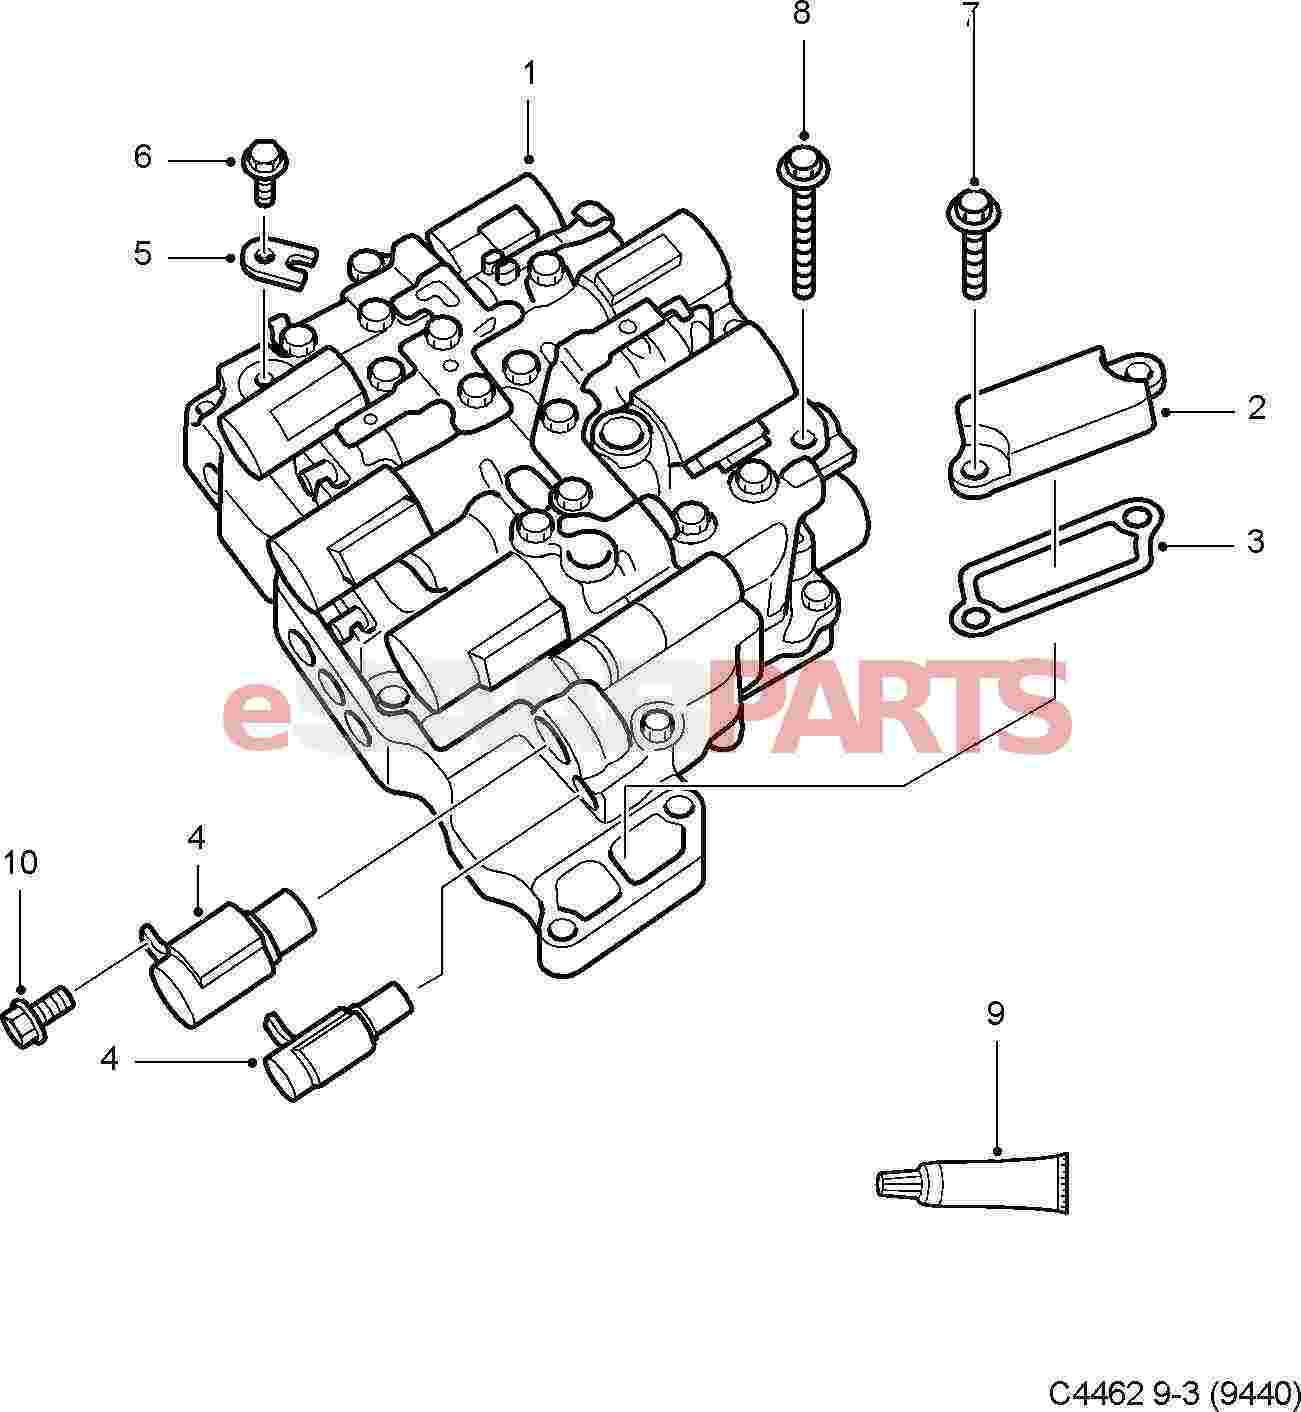 Saab 9 3 2 0l Turbo Serpentine Belt Diagram